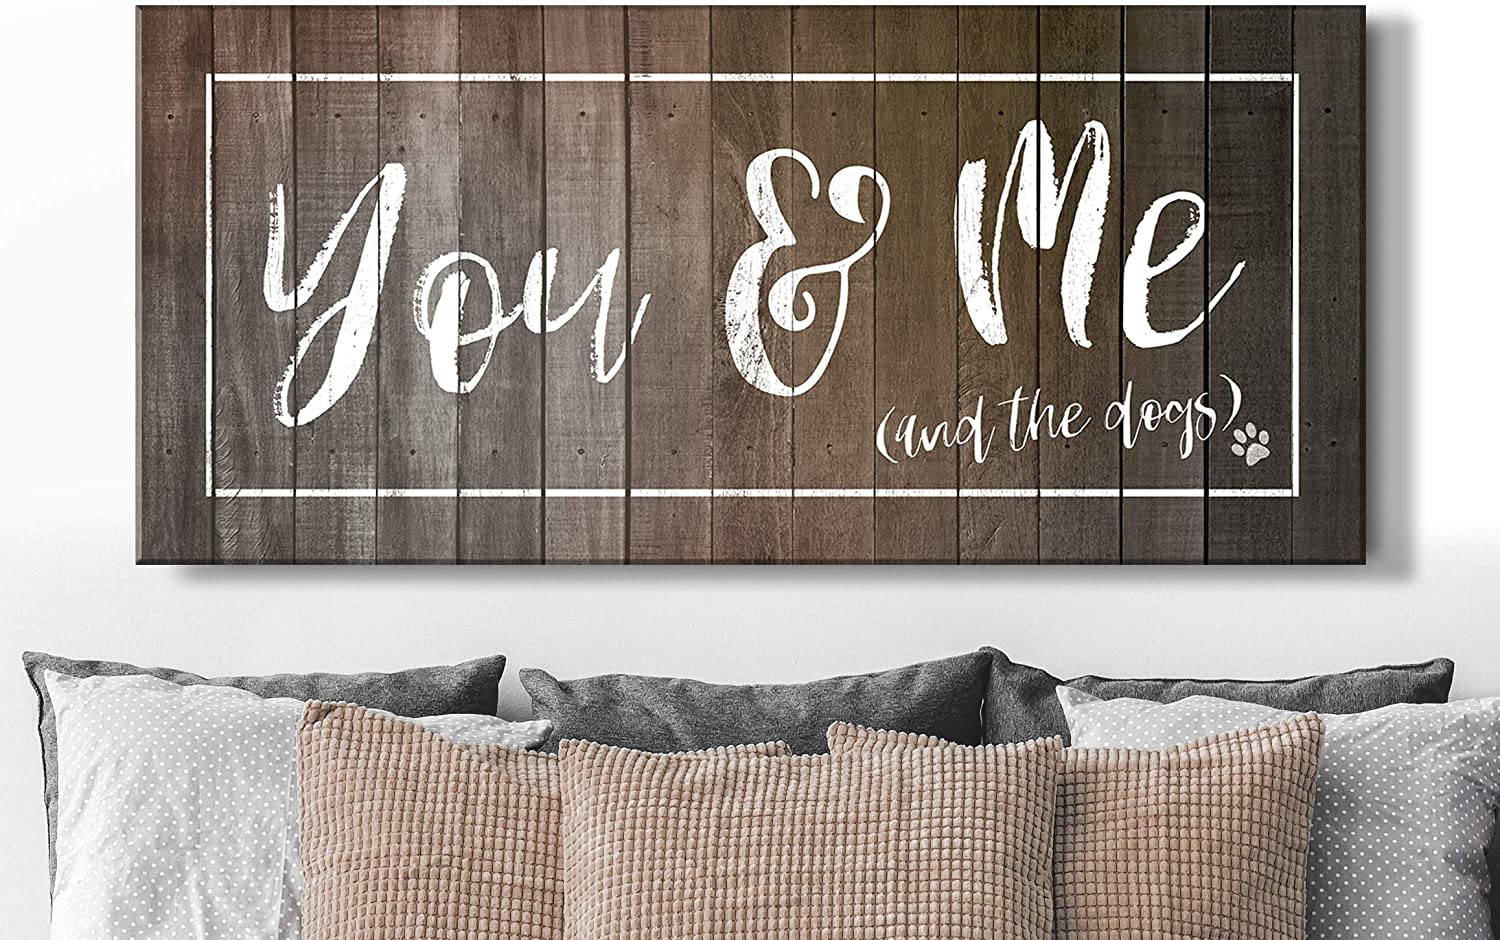 Sense Of Art   You, Me and The Dogs   Dog Signs for Home Decor  Above Bed Decor   Bedroom Wall Decor for Couples   Dog Wall Decor   Dog Signs for Home Decor (Brown, 42x19)